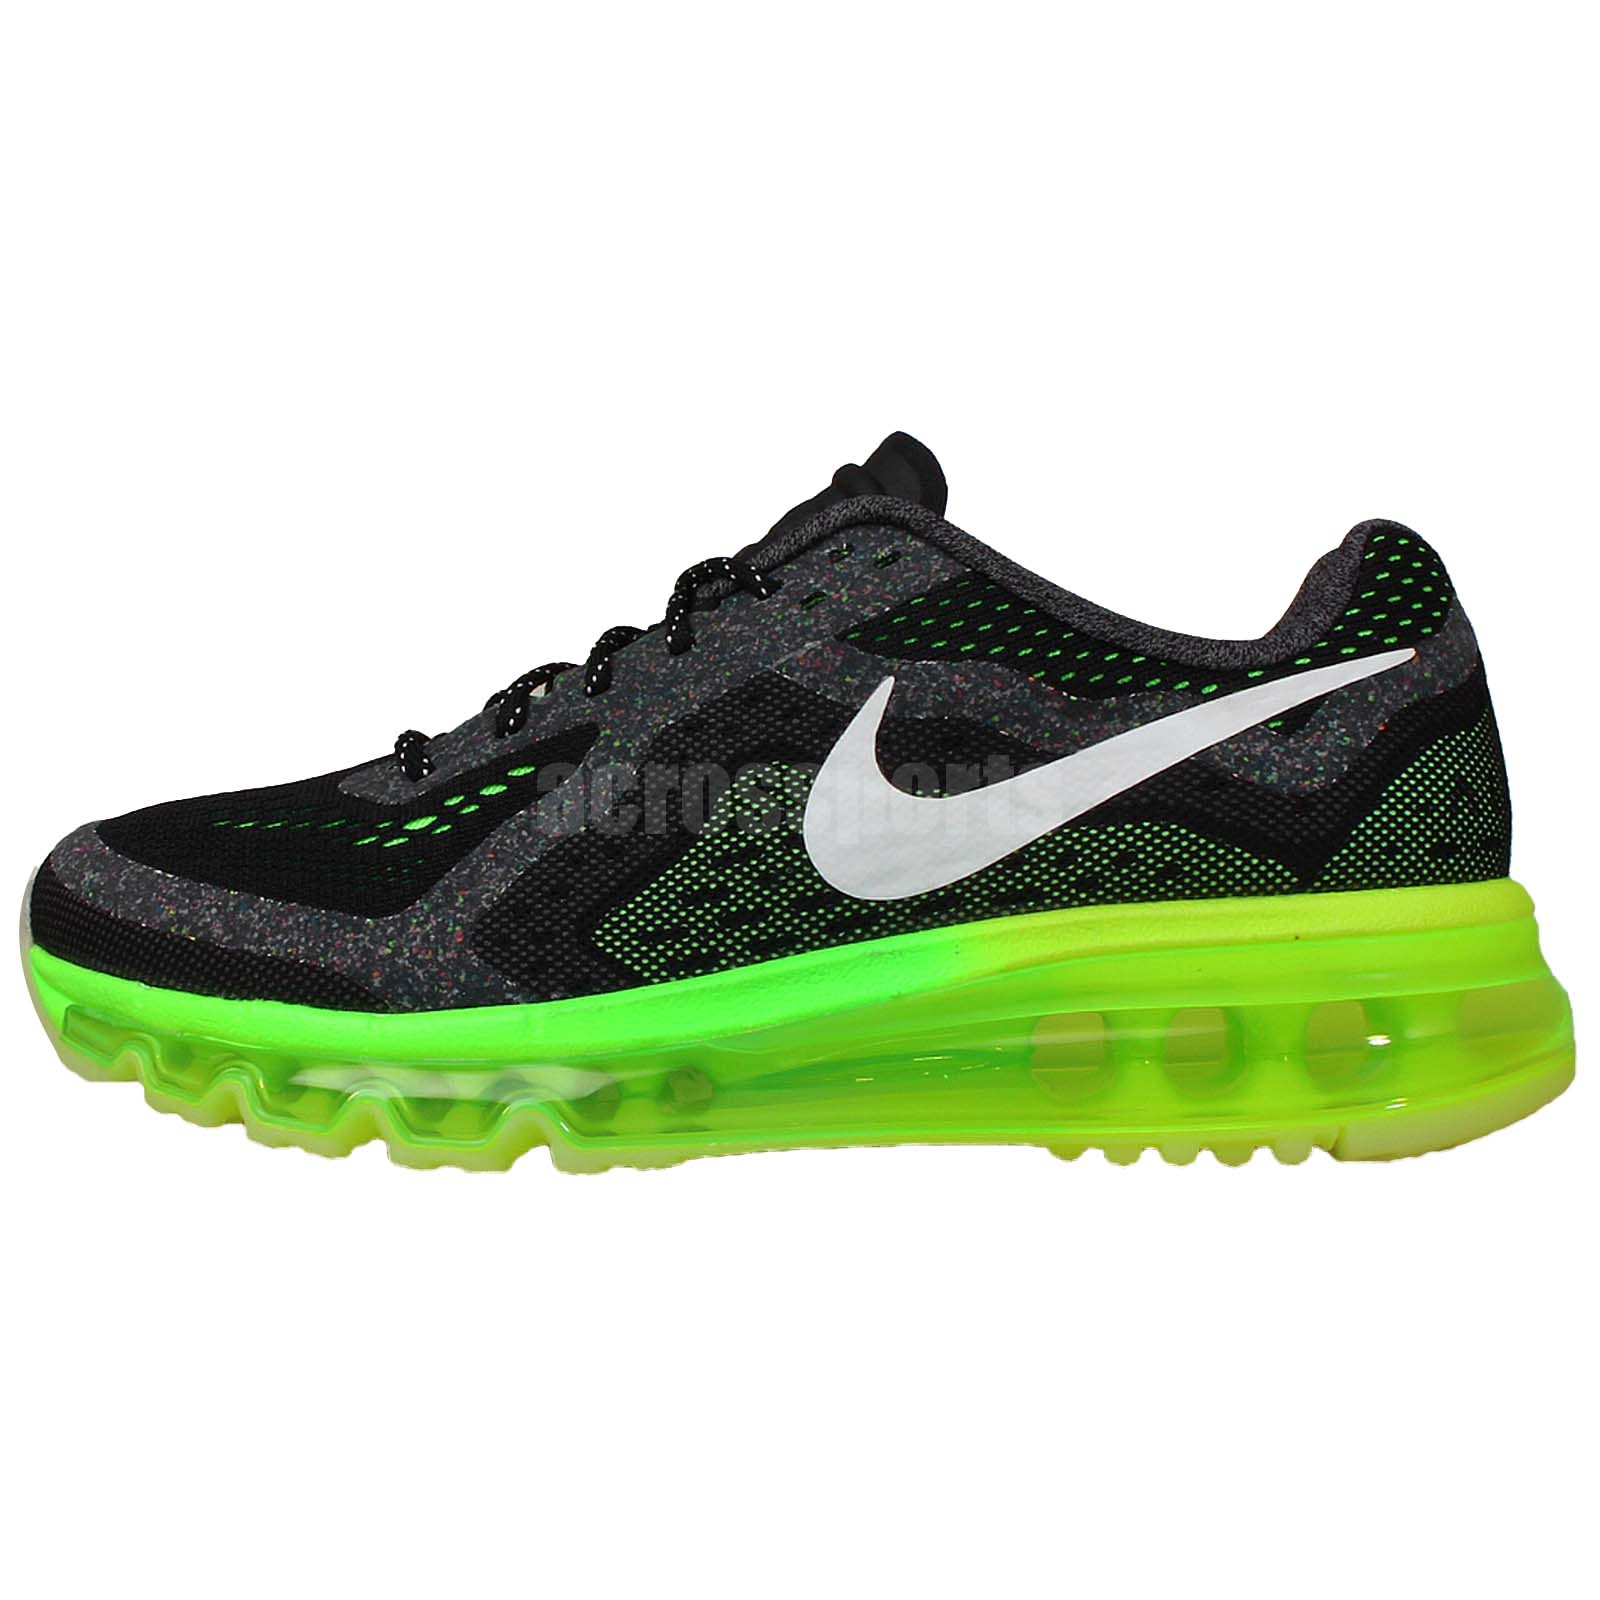 nike air max 2014 glow gs black grey green 2014 youth